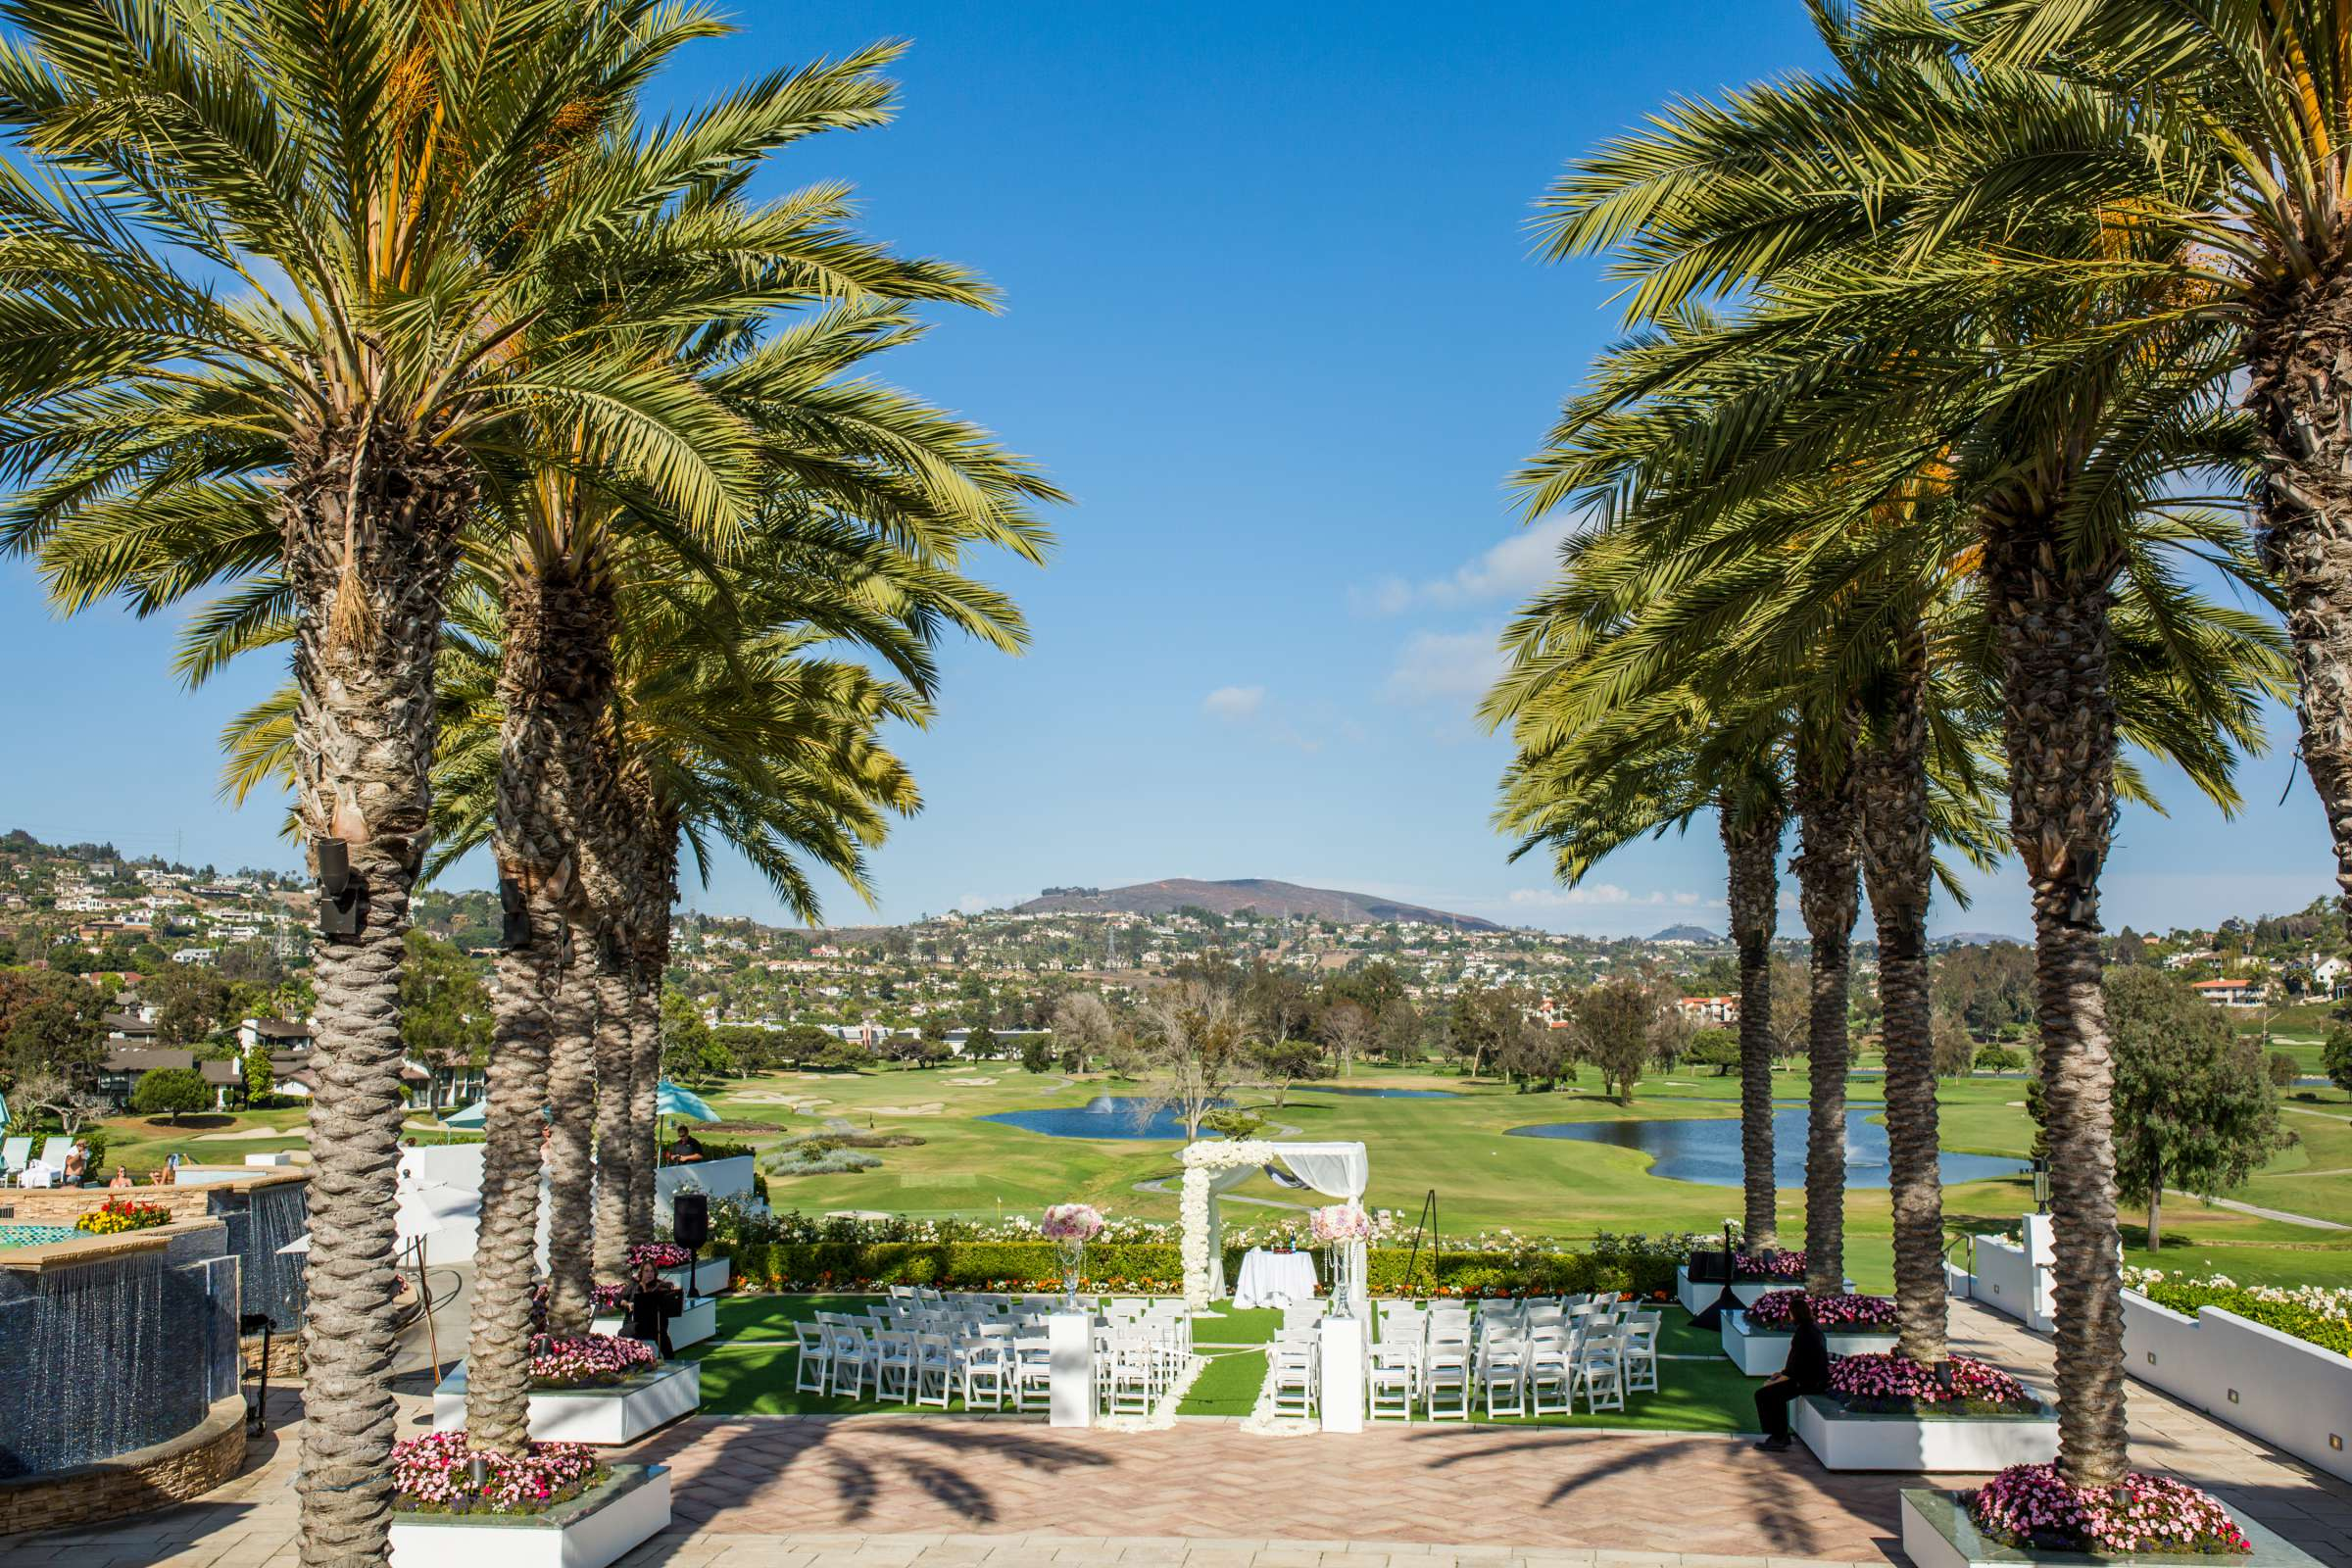 Omni La Costa Resort & Spa Wedding coordinated by Bliss Events, Brittany and Matthew Wedding Photo #247185 by True Photography